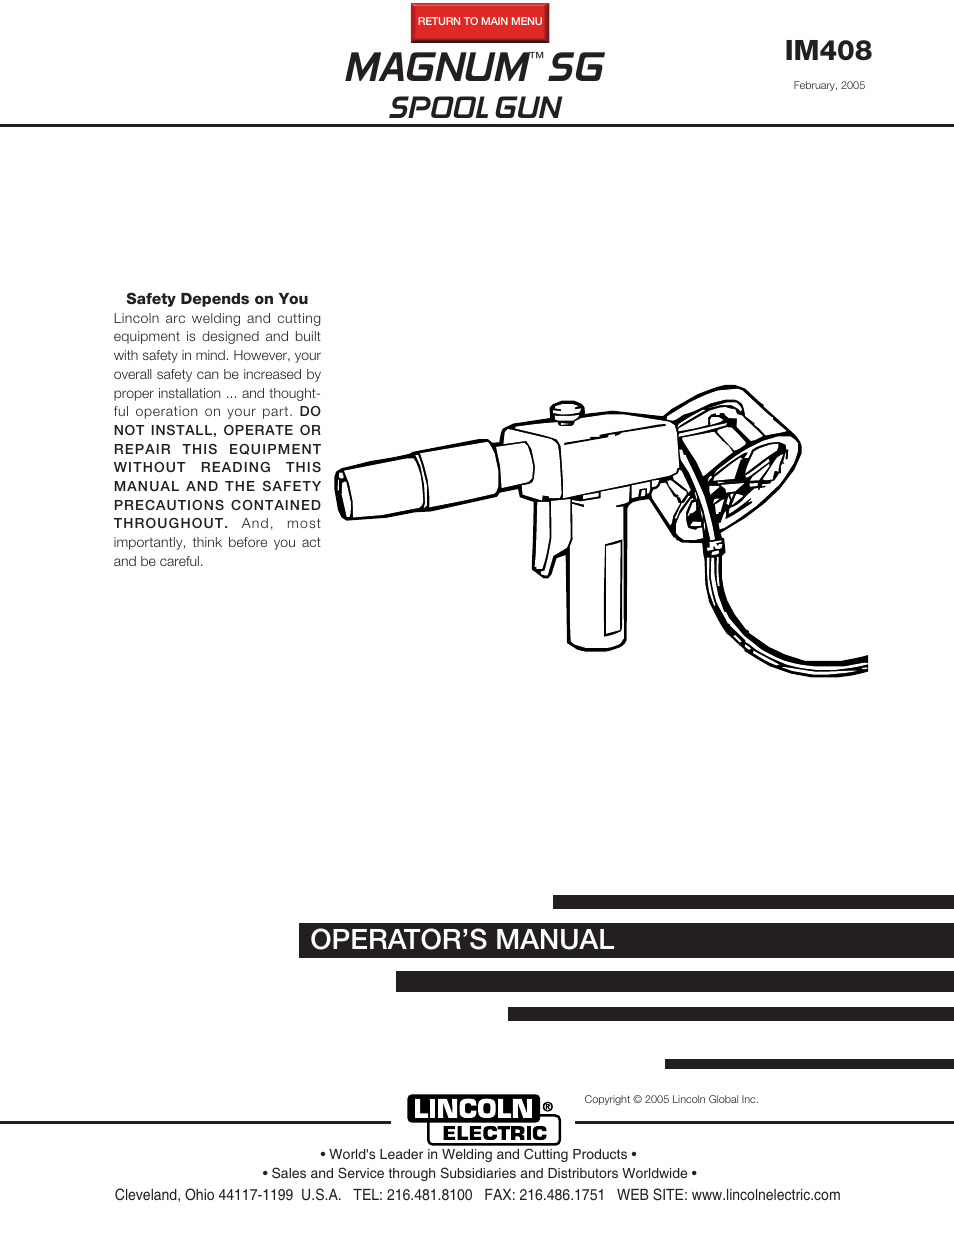 Lincoln Electric IM408 MAGNUM SG SPOOL GUN User Manual